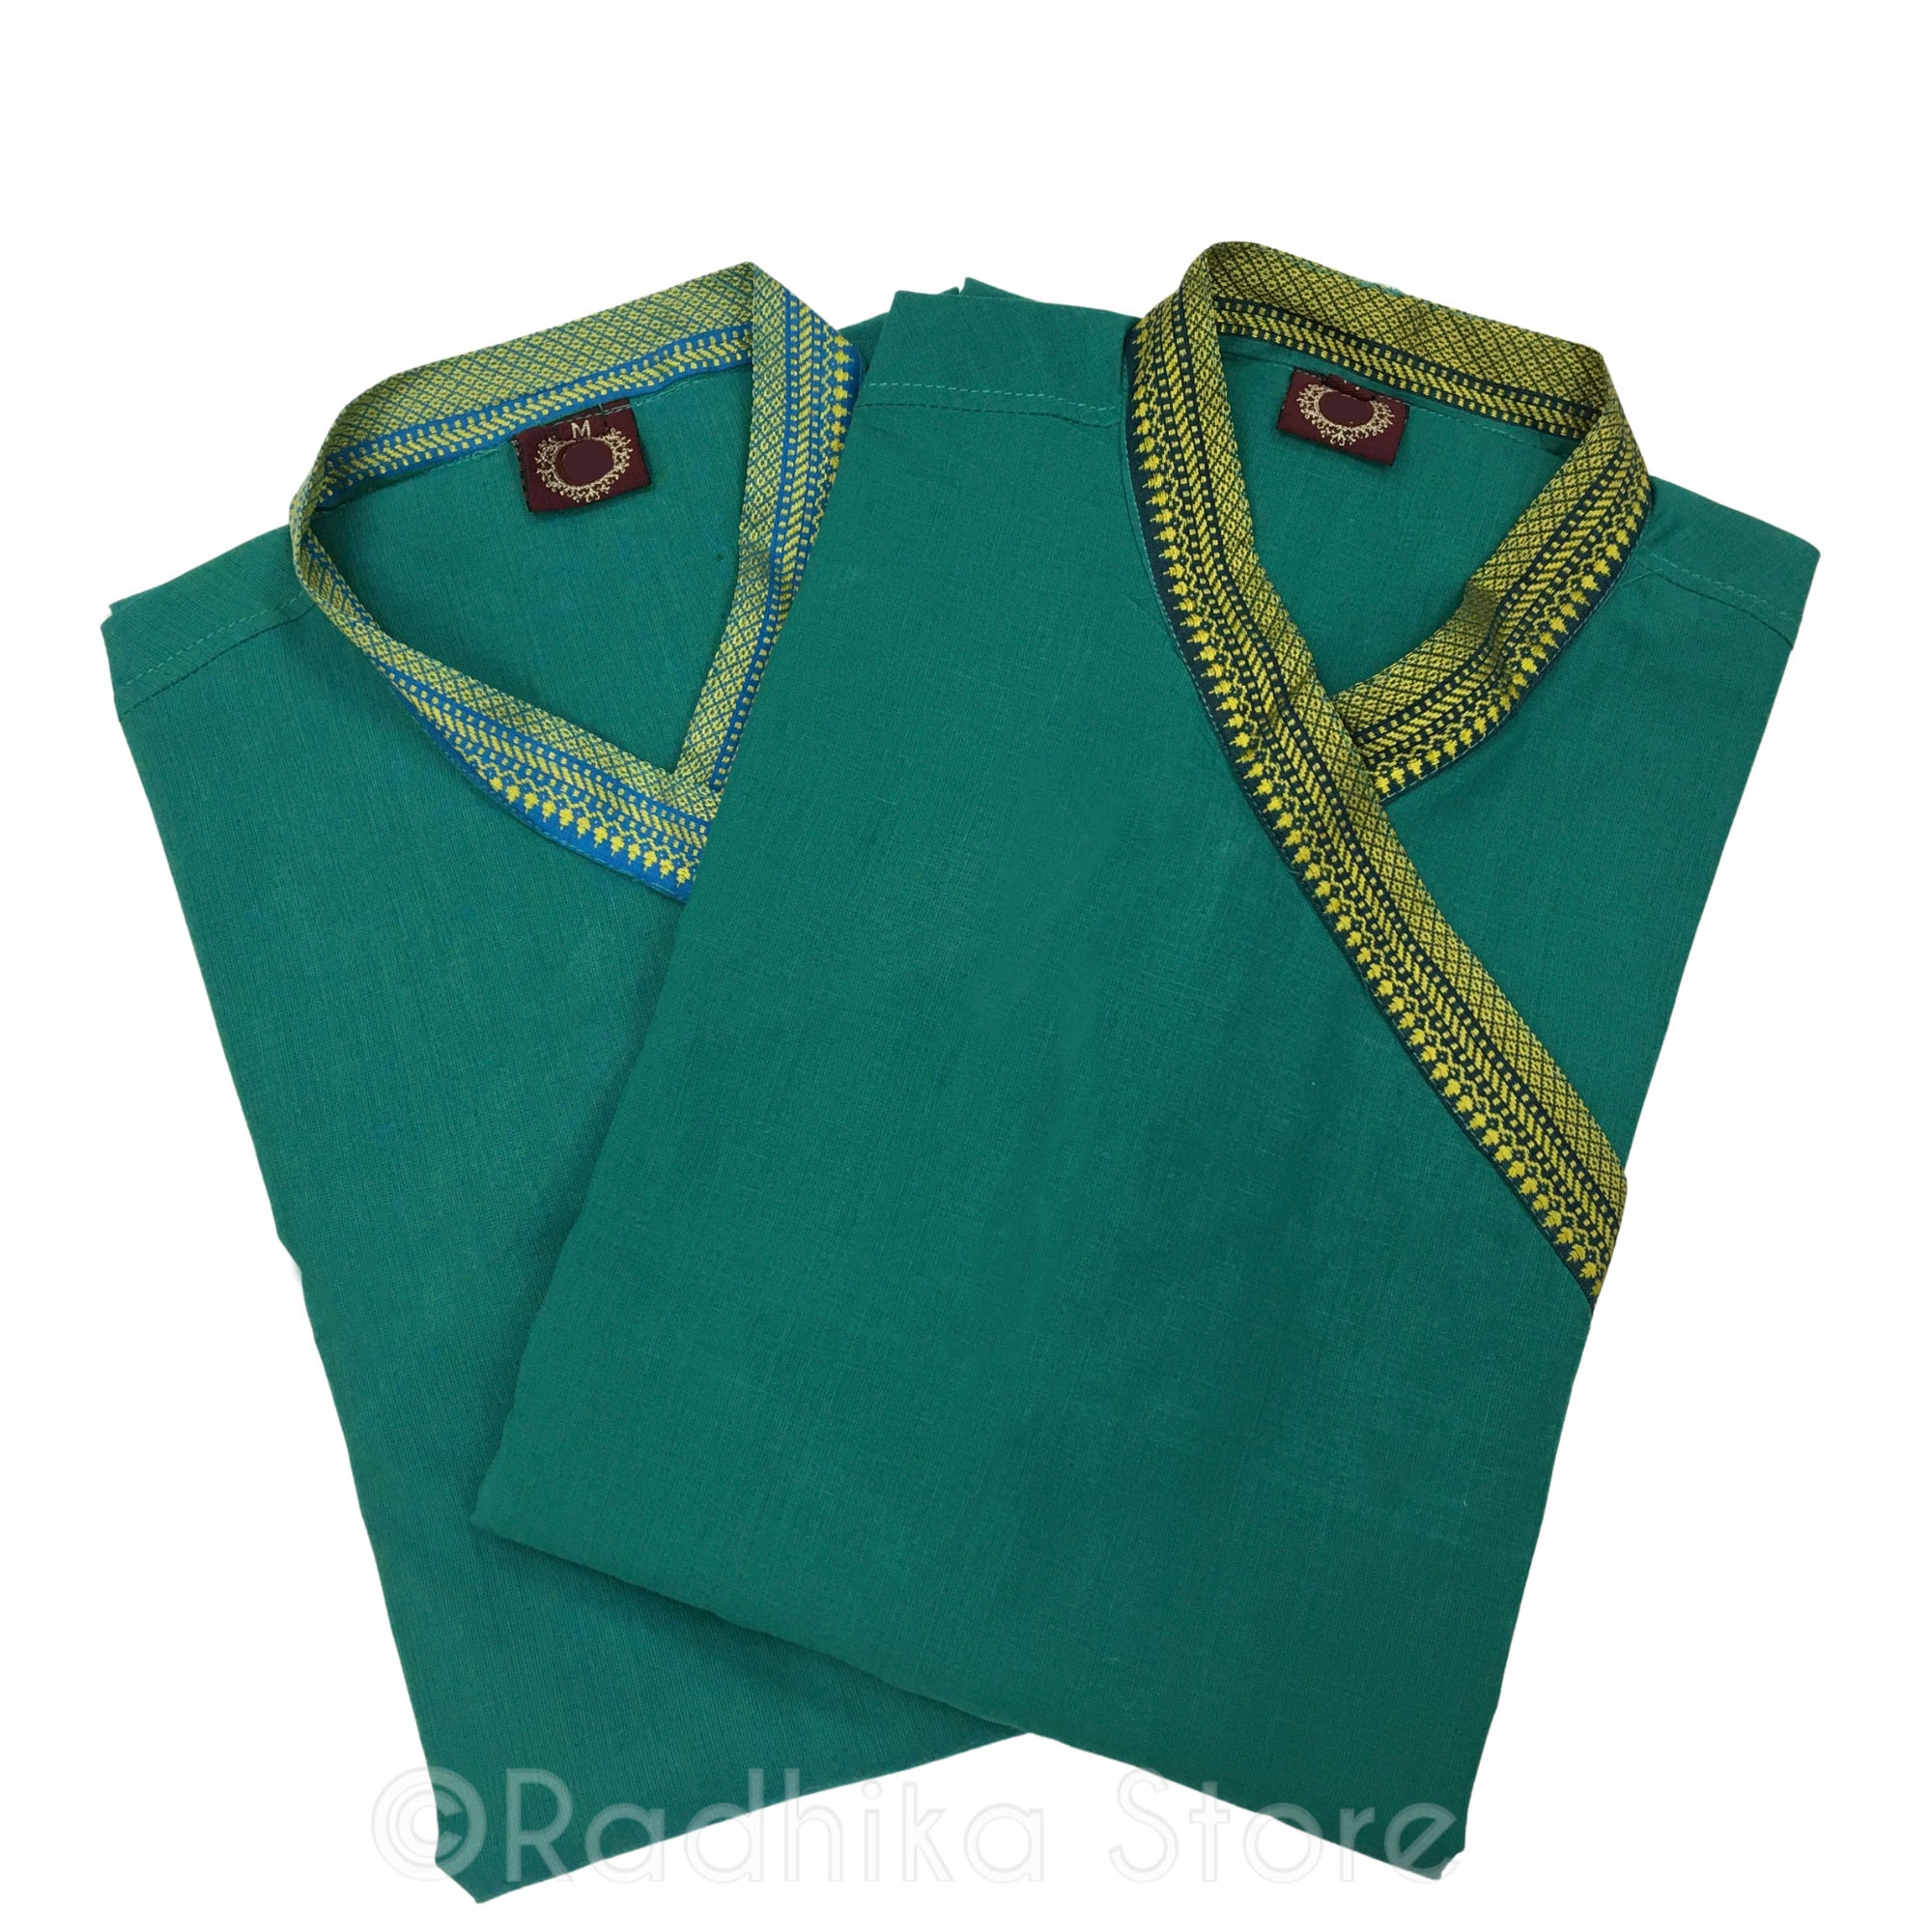 Bright Green Festival Bundi Kurta - Cotton - Short Sleeve